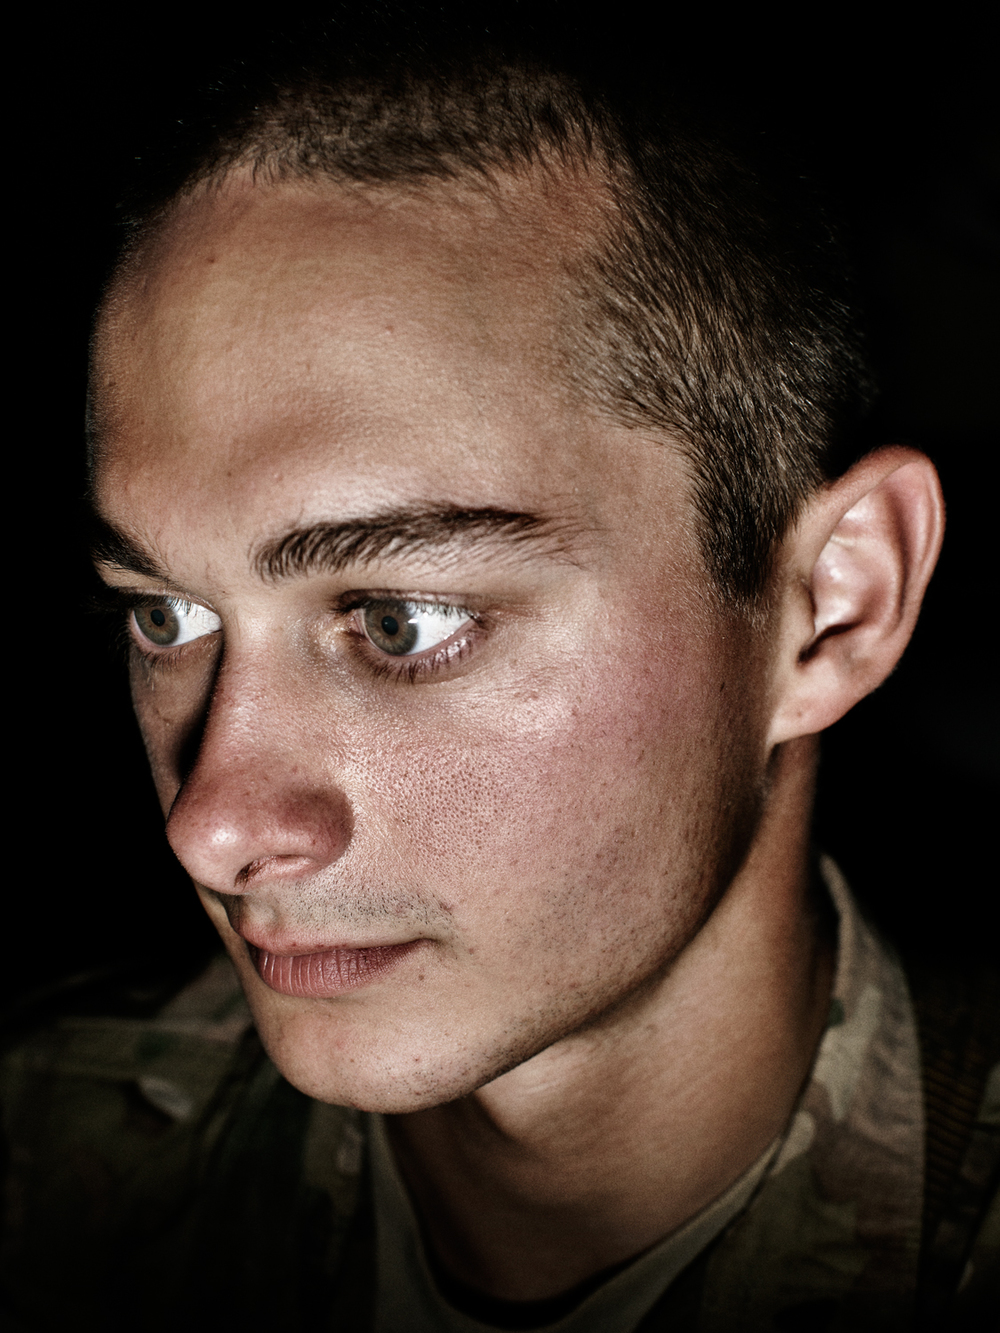 U.S. Army Private First Class Patrick Cork.